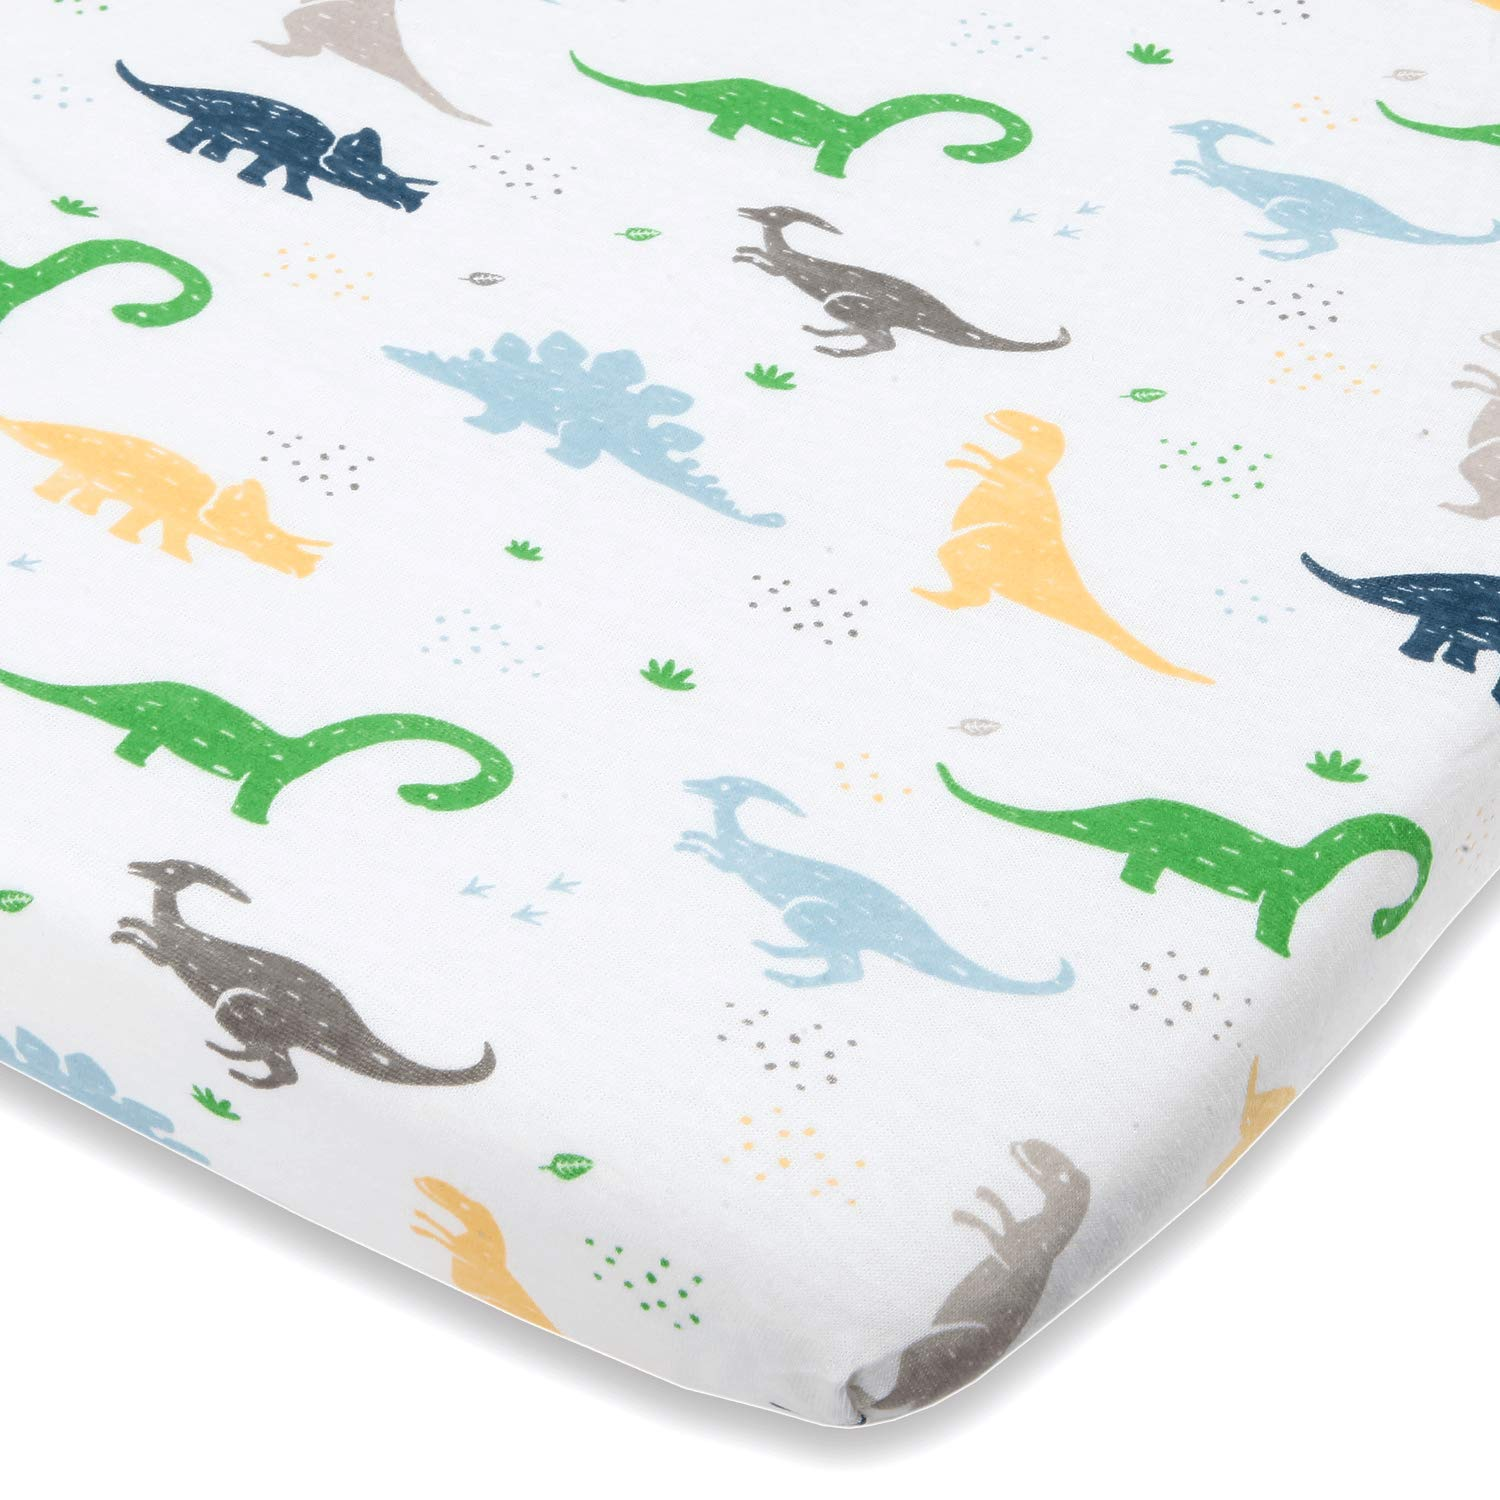 Dinosaur Bassinet Sheets Compatible with Chicco Lullago, Halo Bassinet, Arms Reach Versatile Co Sleeper and Other Oval, Rectangle, Hourglass Bassinet Pads - Pure Natural Cotton - Ultra Soft